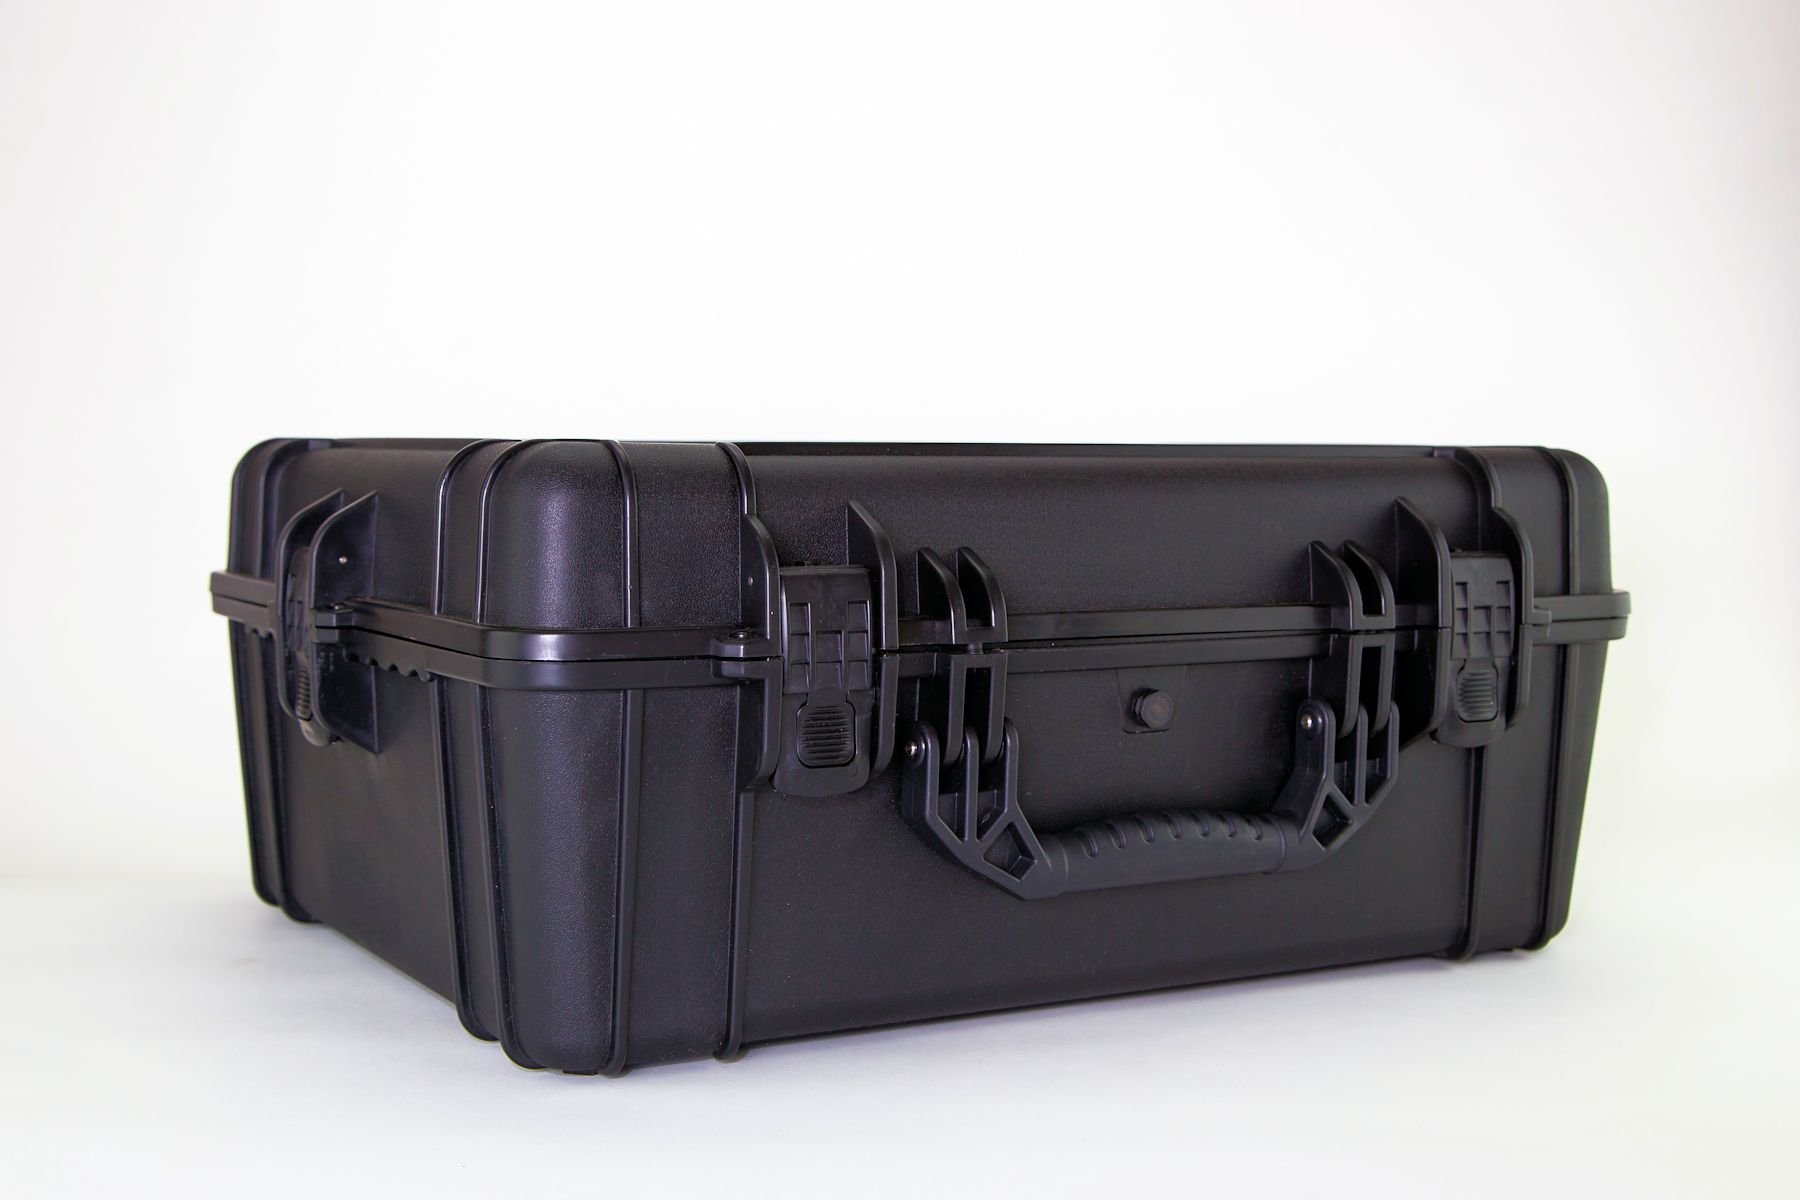 Condition 1 25'' XL #839 Black Waterproof Trunk with DIY Customizable Foam by Condition 1